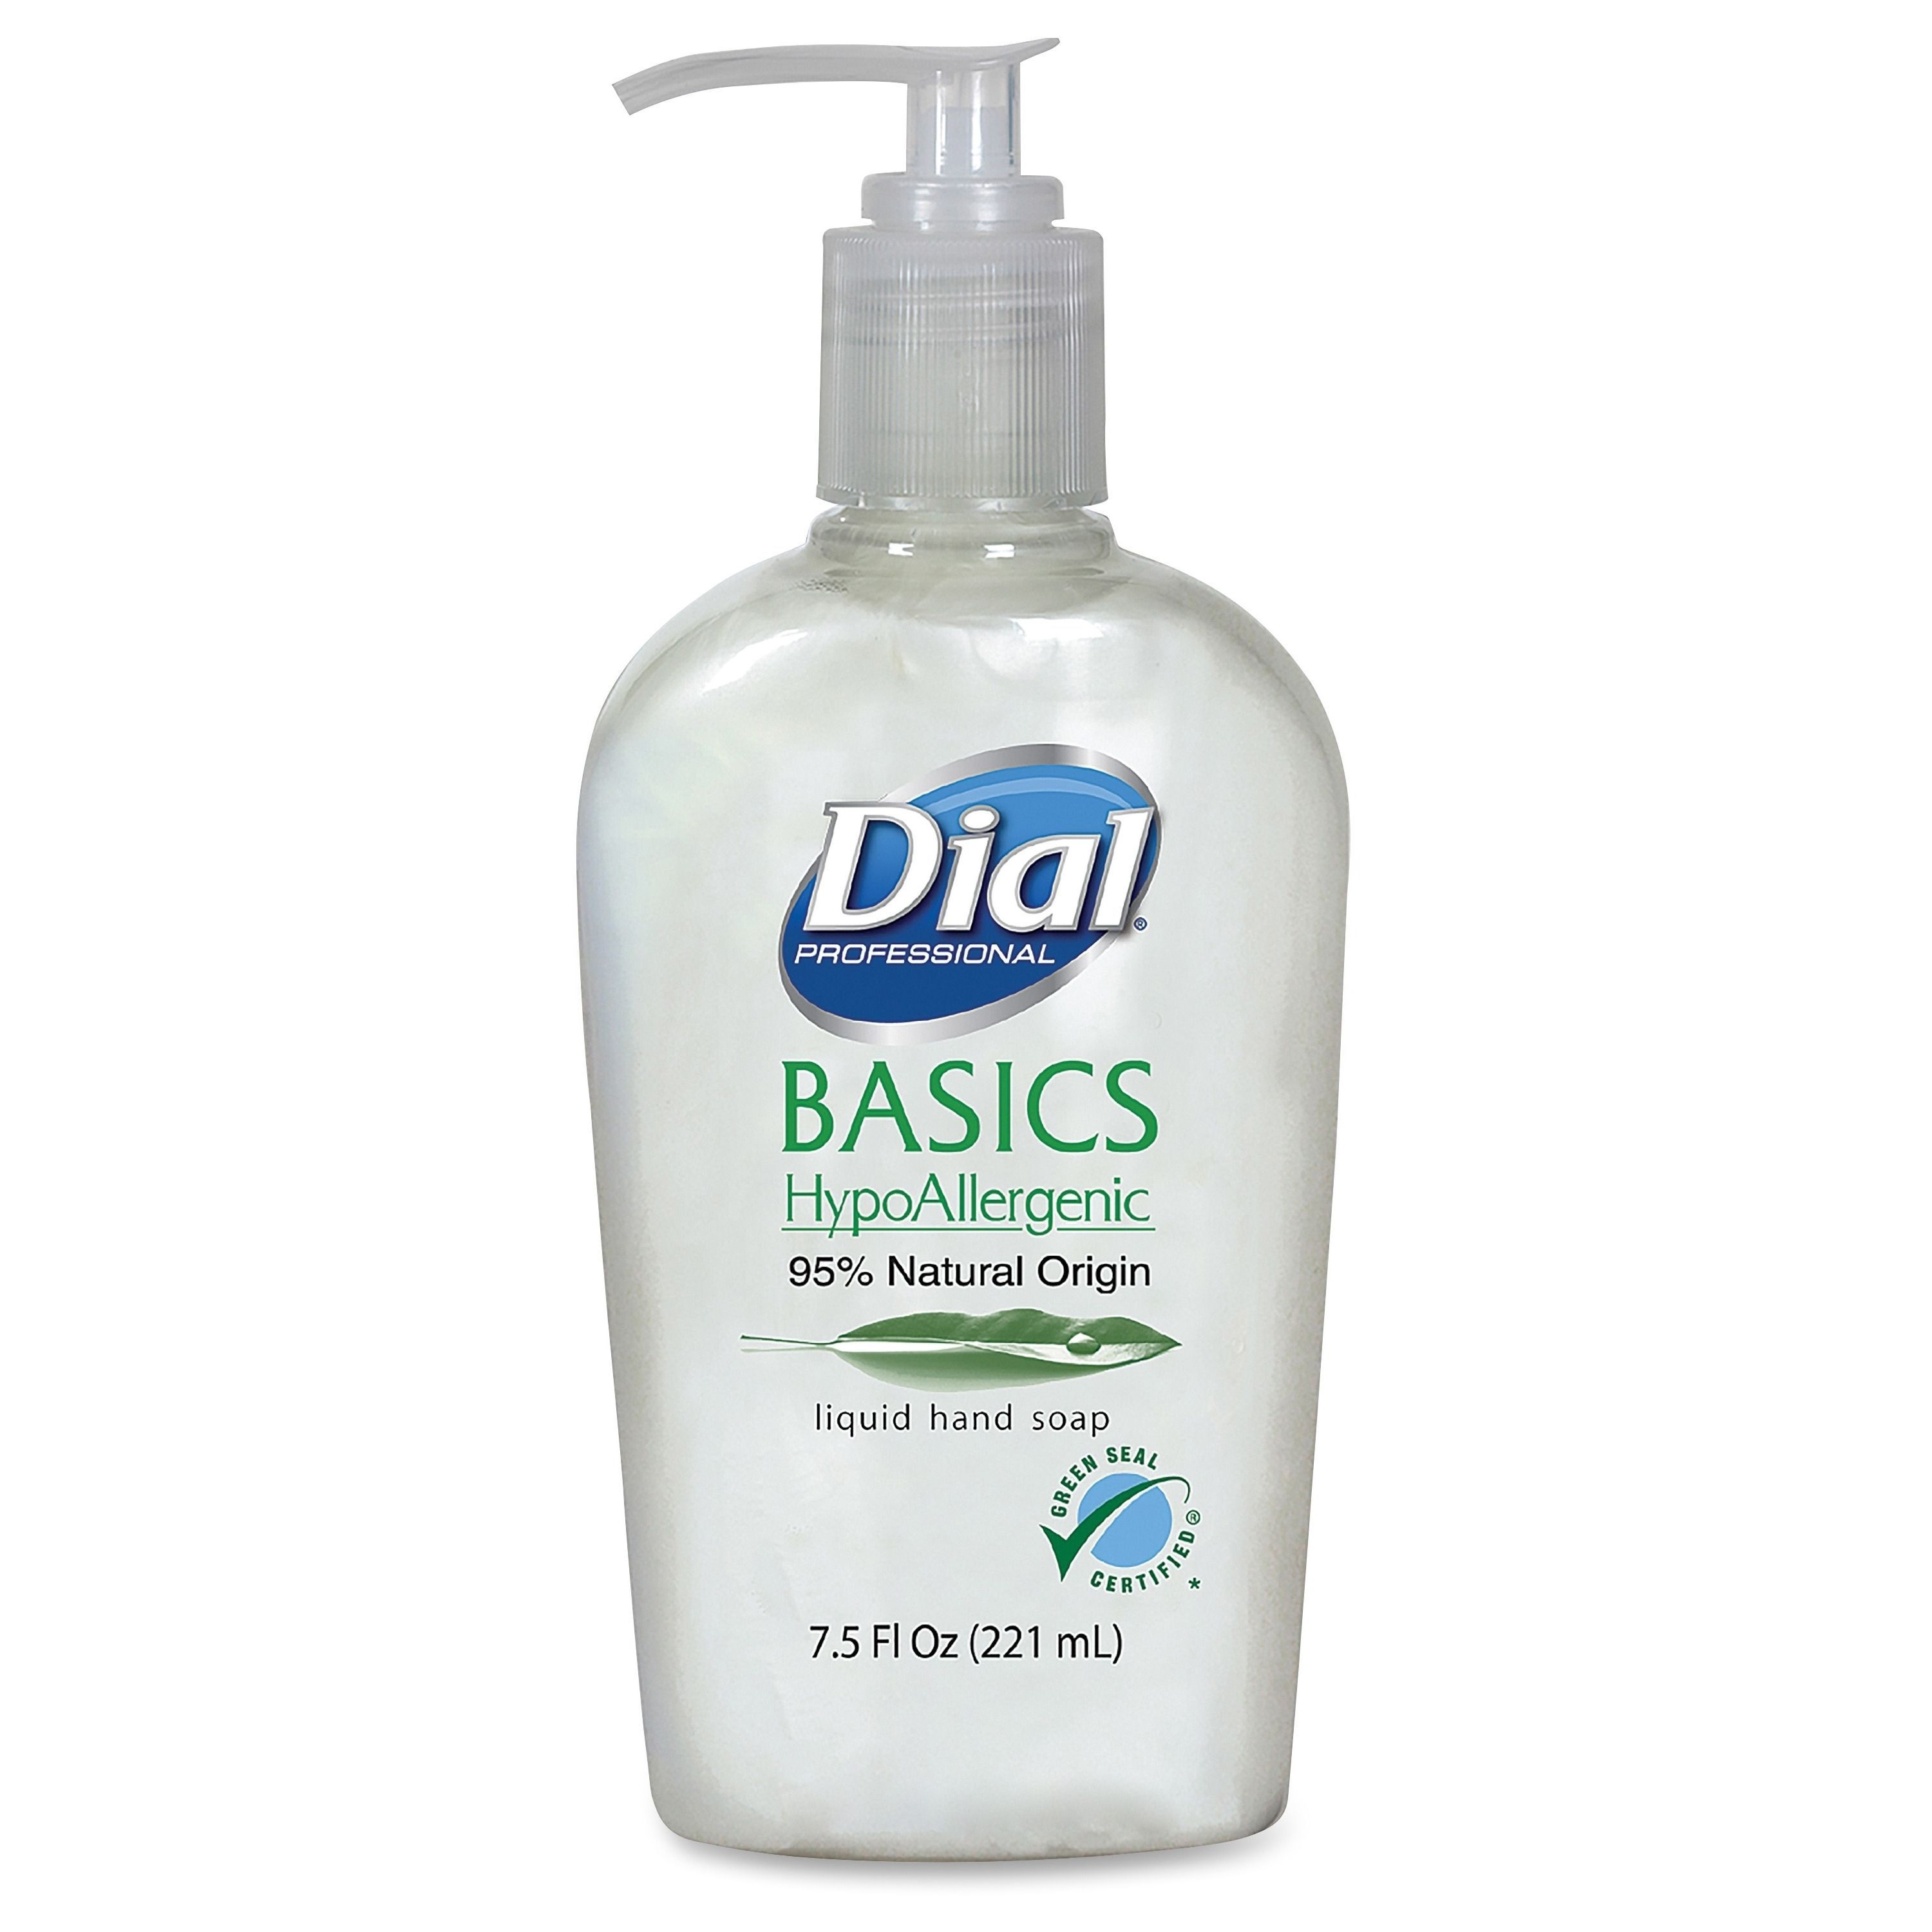 Dial Professional Basics Liquid Soap White Comes In Pack Of 12